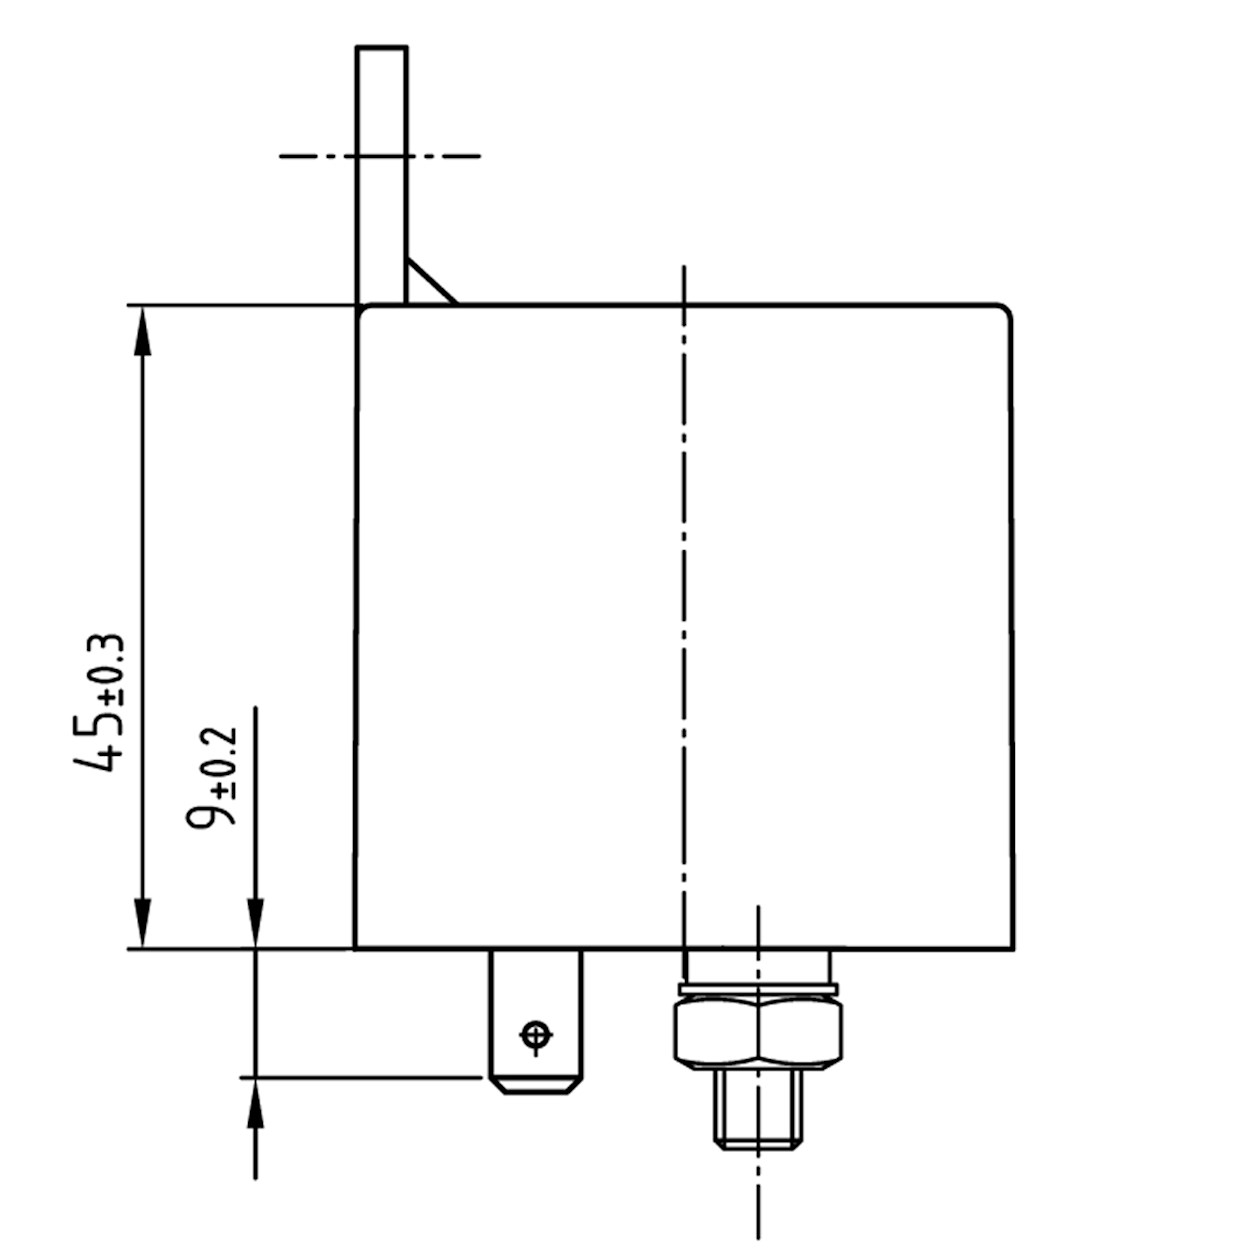 hight resolution of heavy duty relay diagram